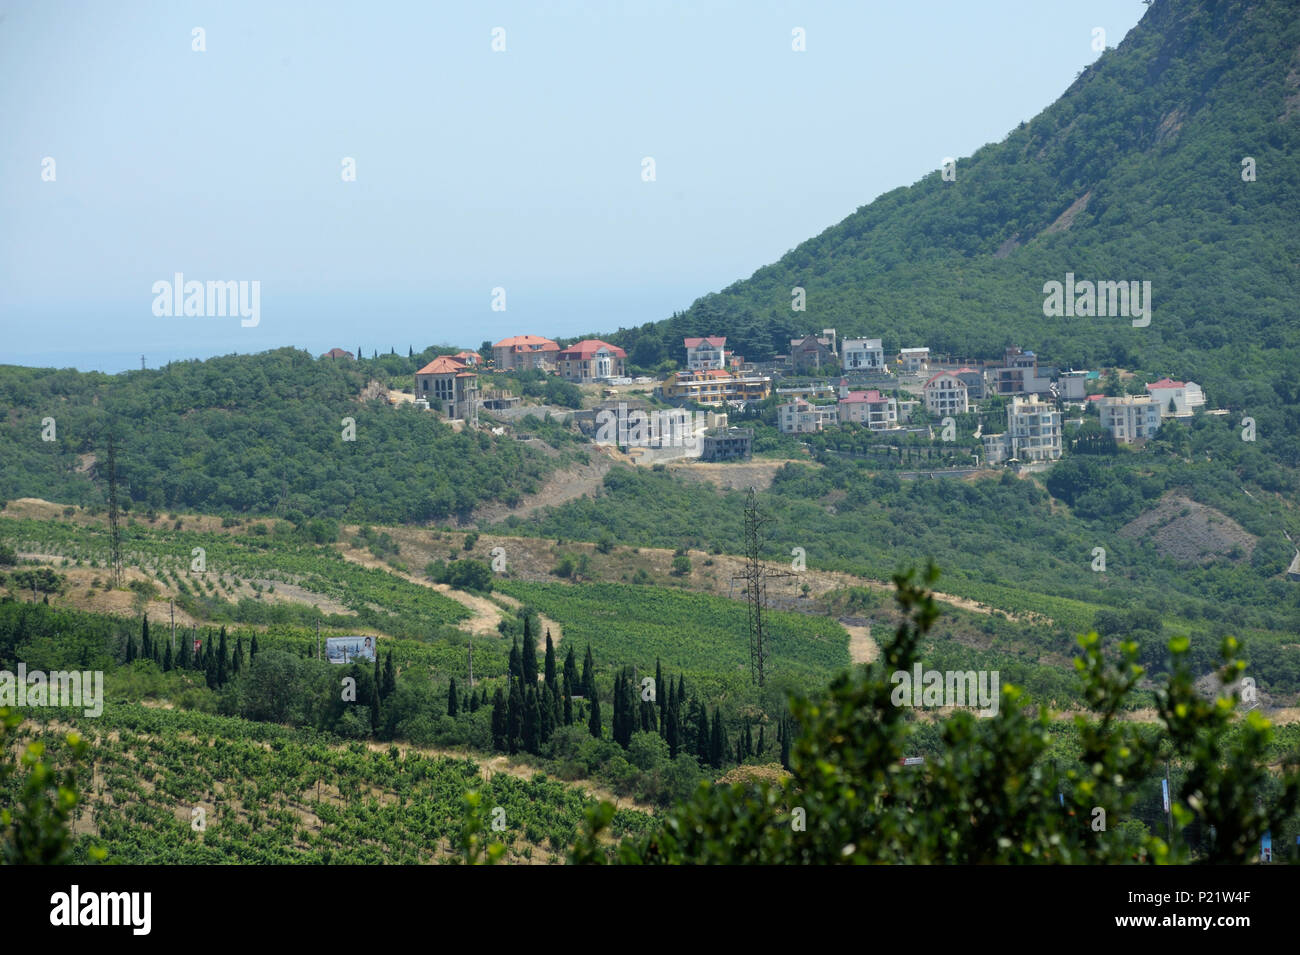 View of a small resort town Krasnokamenka and a lake situated at a foothill of a mountain, sea in the background. June 11, 2017. Crimea - Stock Image